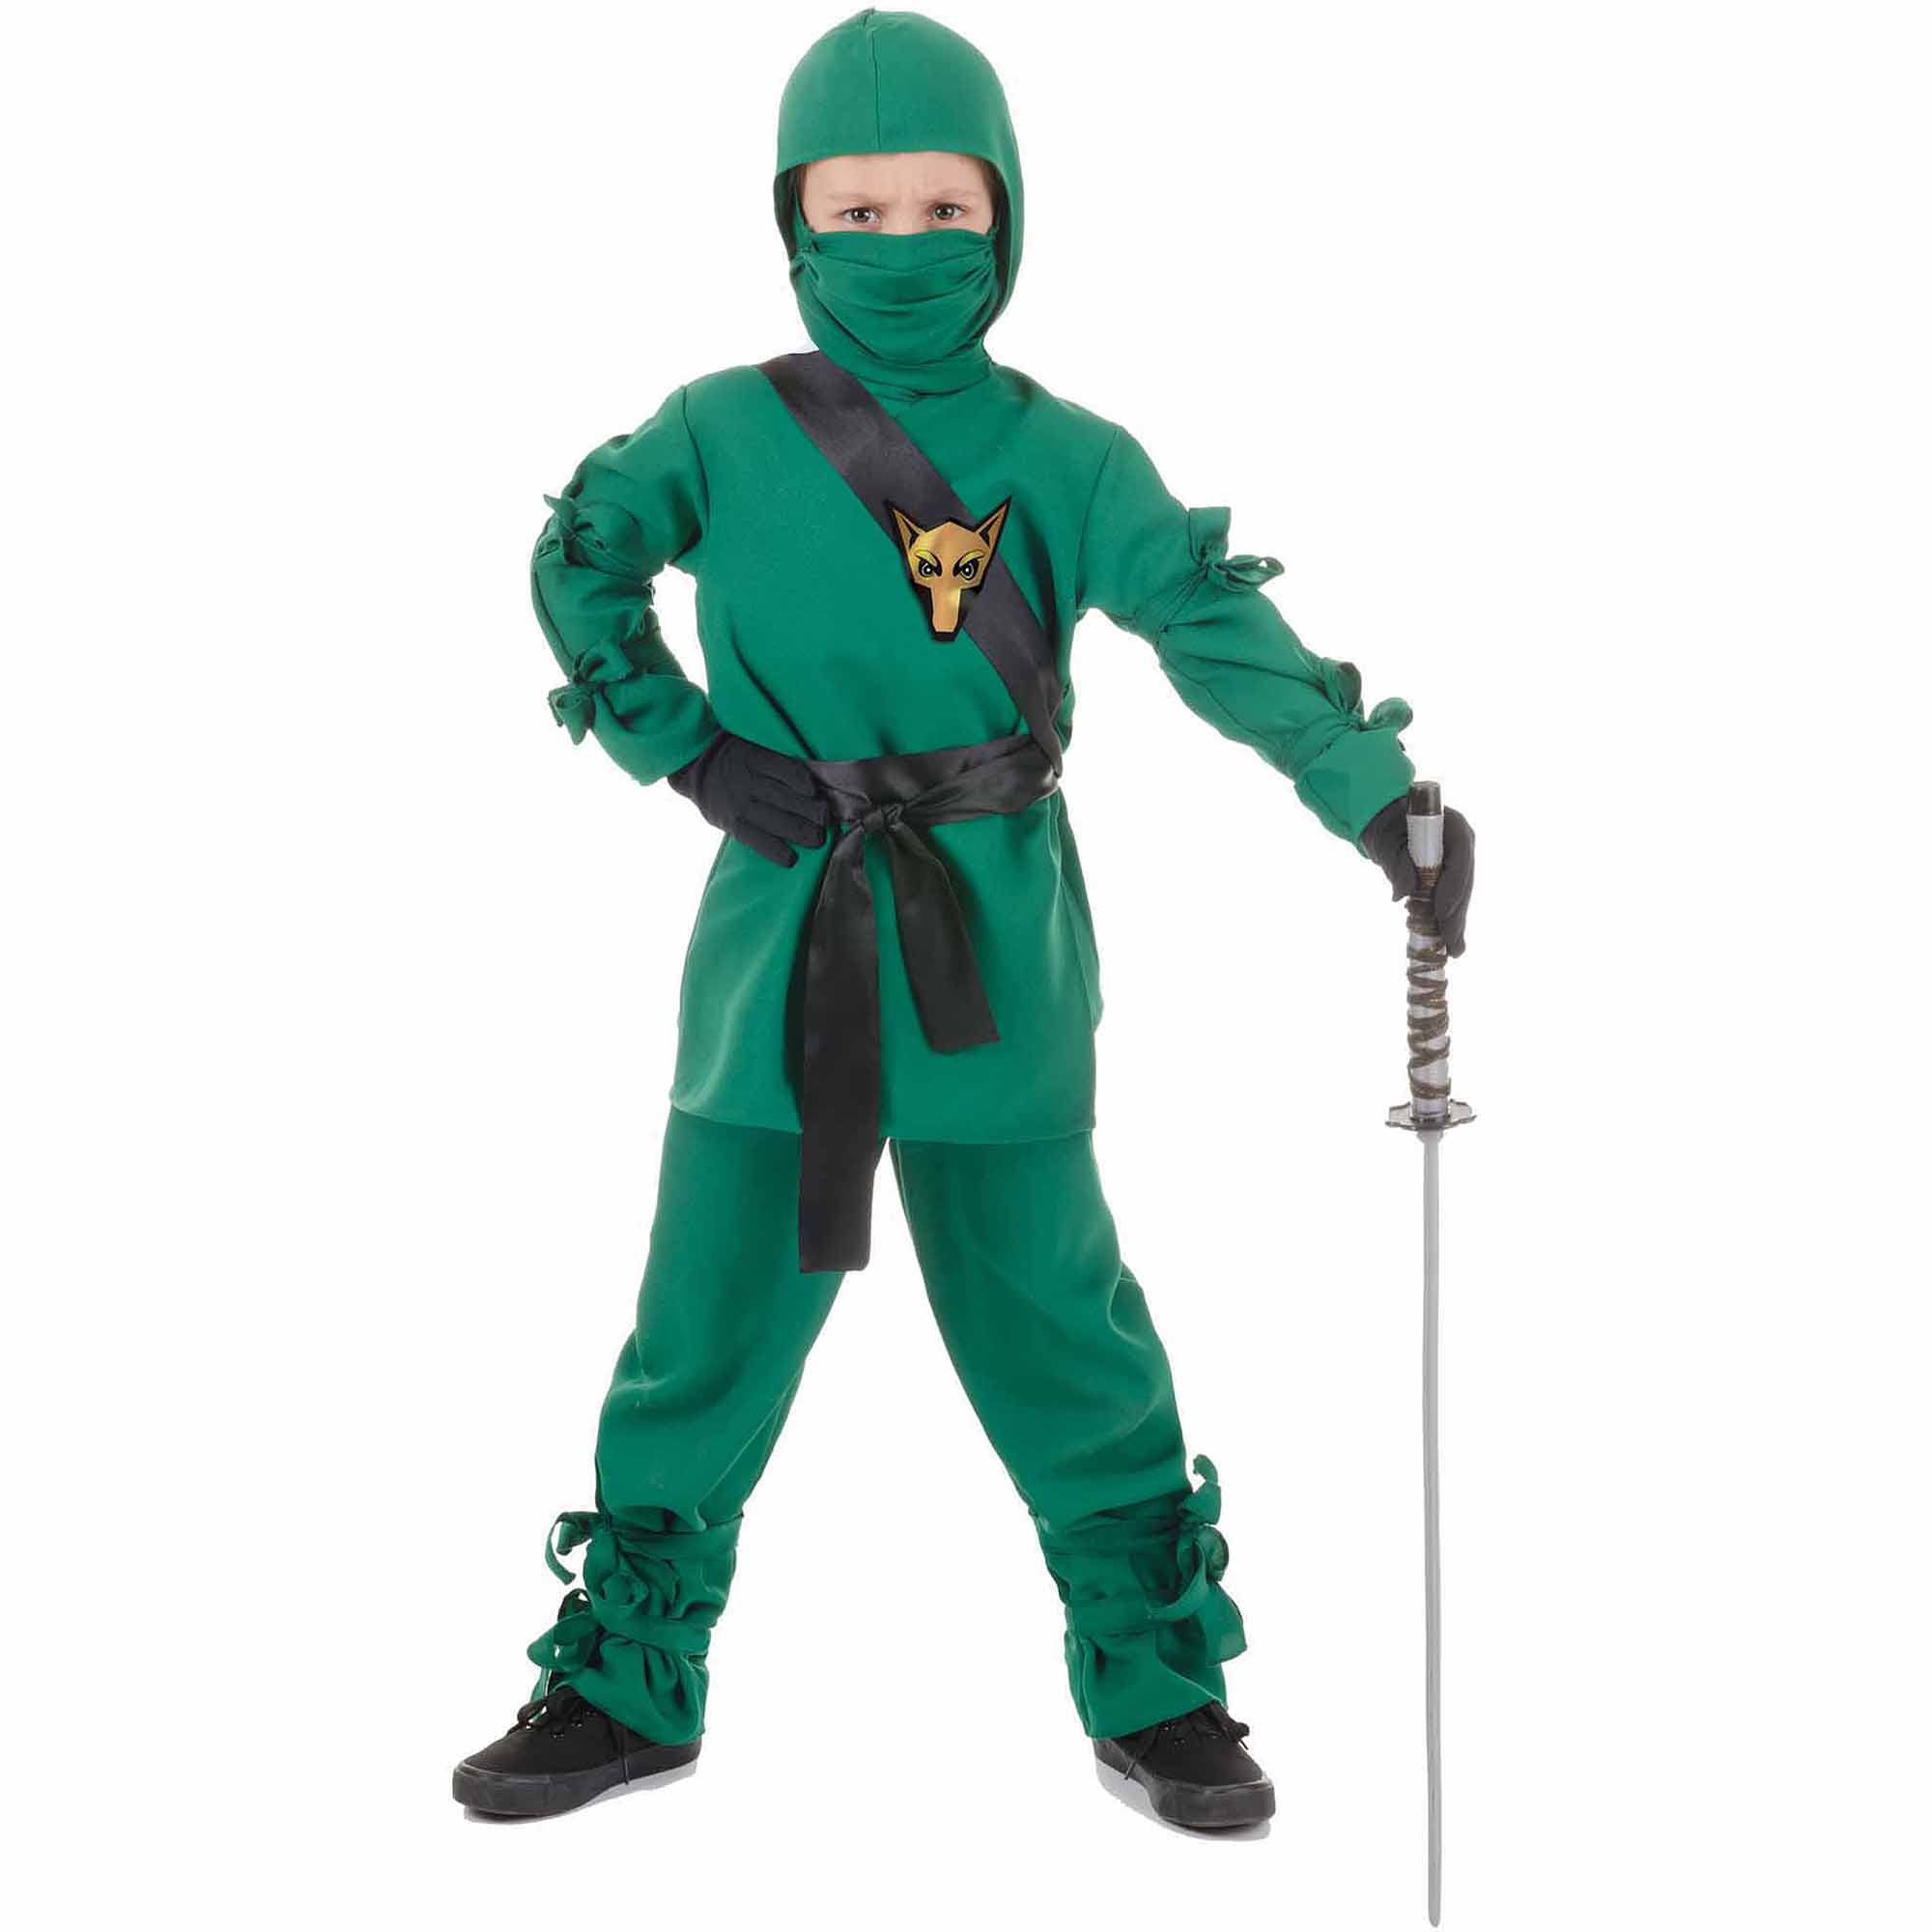 Green Ninja Child Halloween Costume